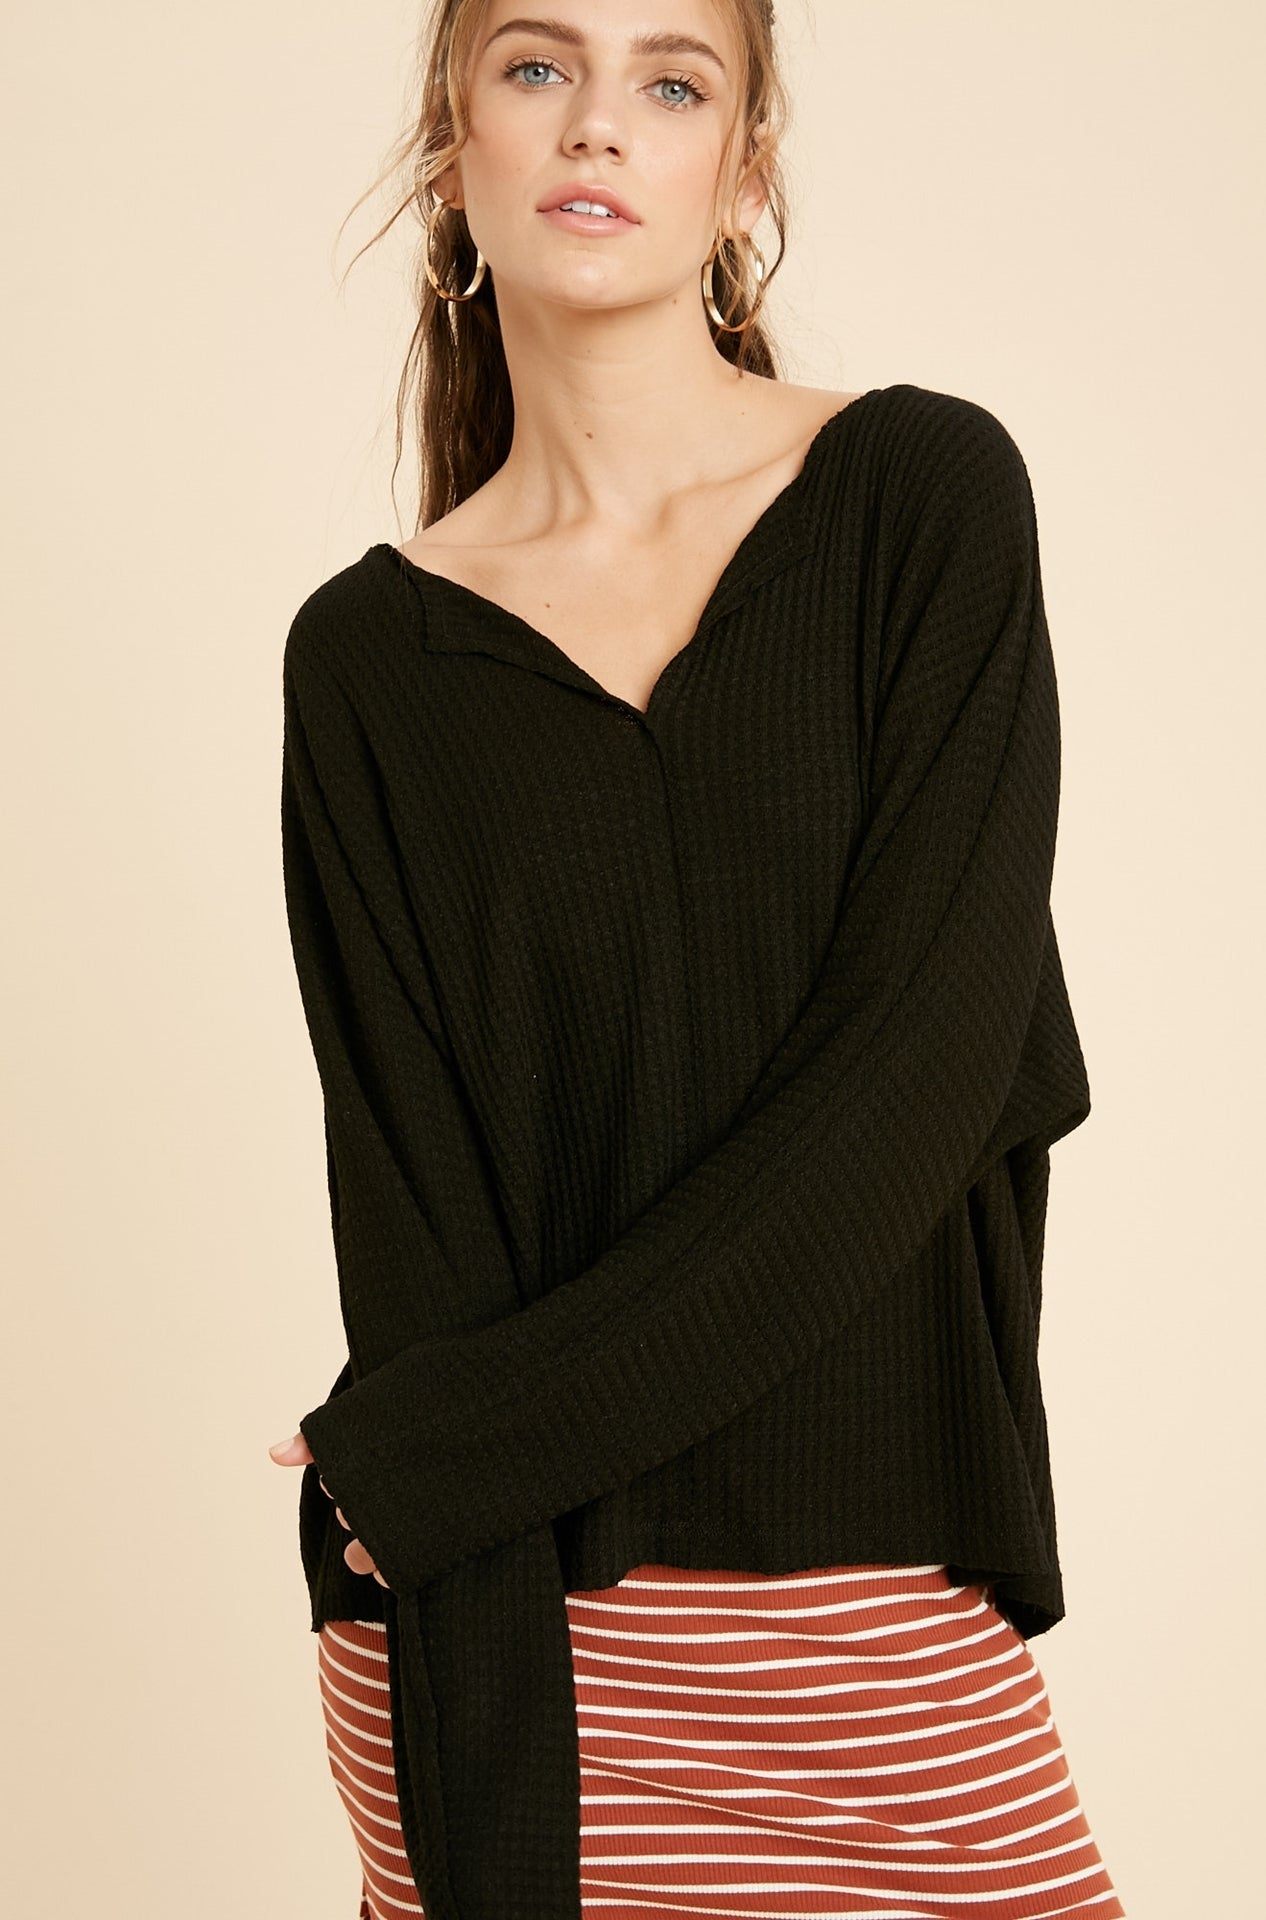 Whisper v neck knit top - Black-sweater-Branded Envy